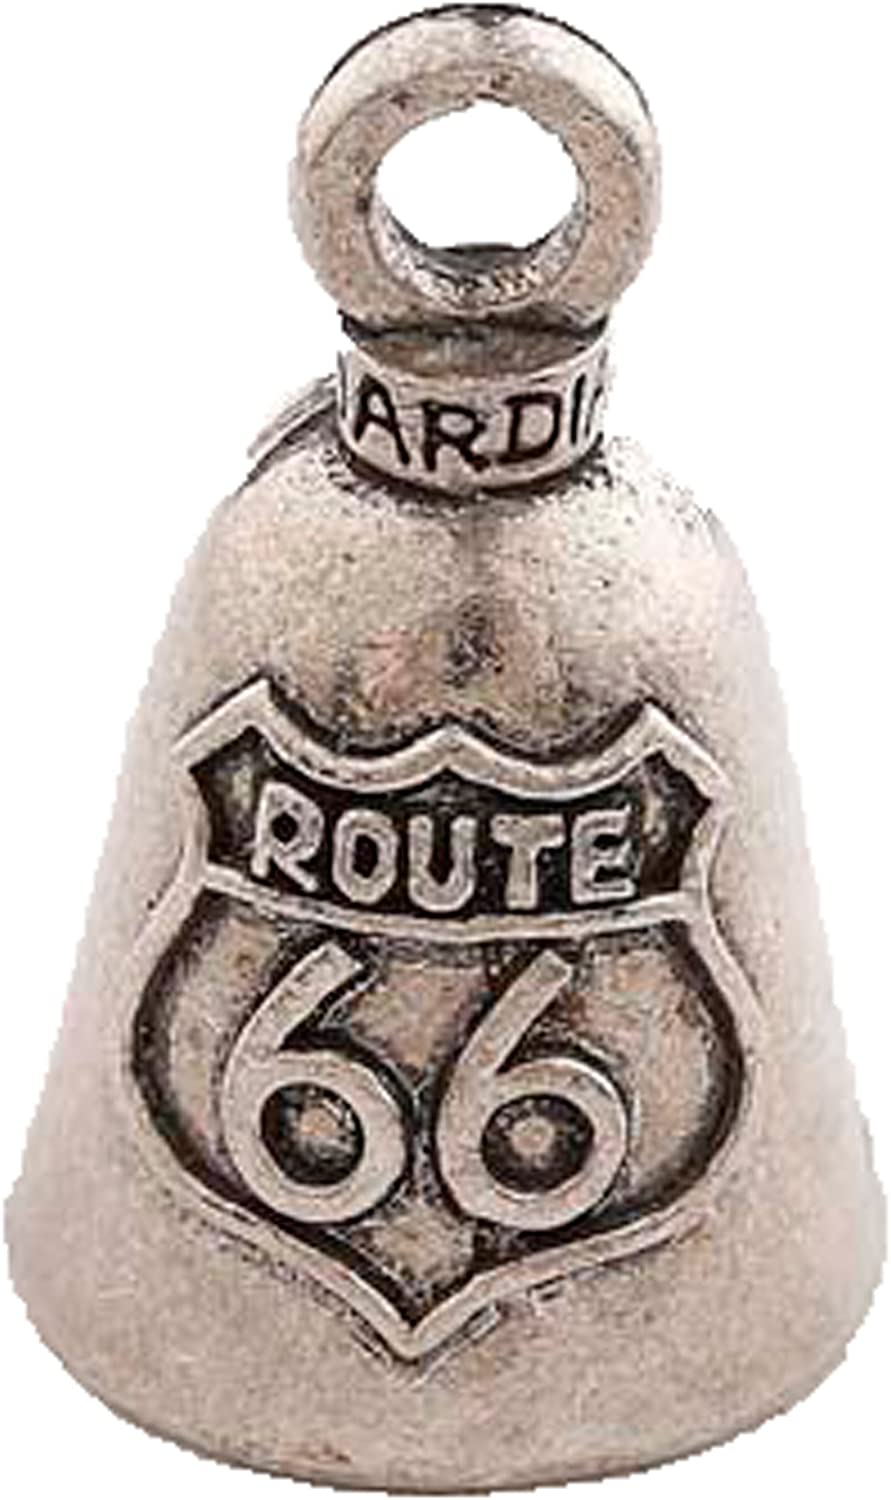 Route 66 Guardian Motorcycle Spirit Bell Gremlin Key Ring Accessory Gift